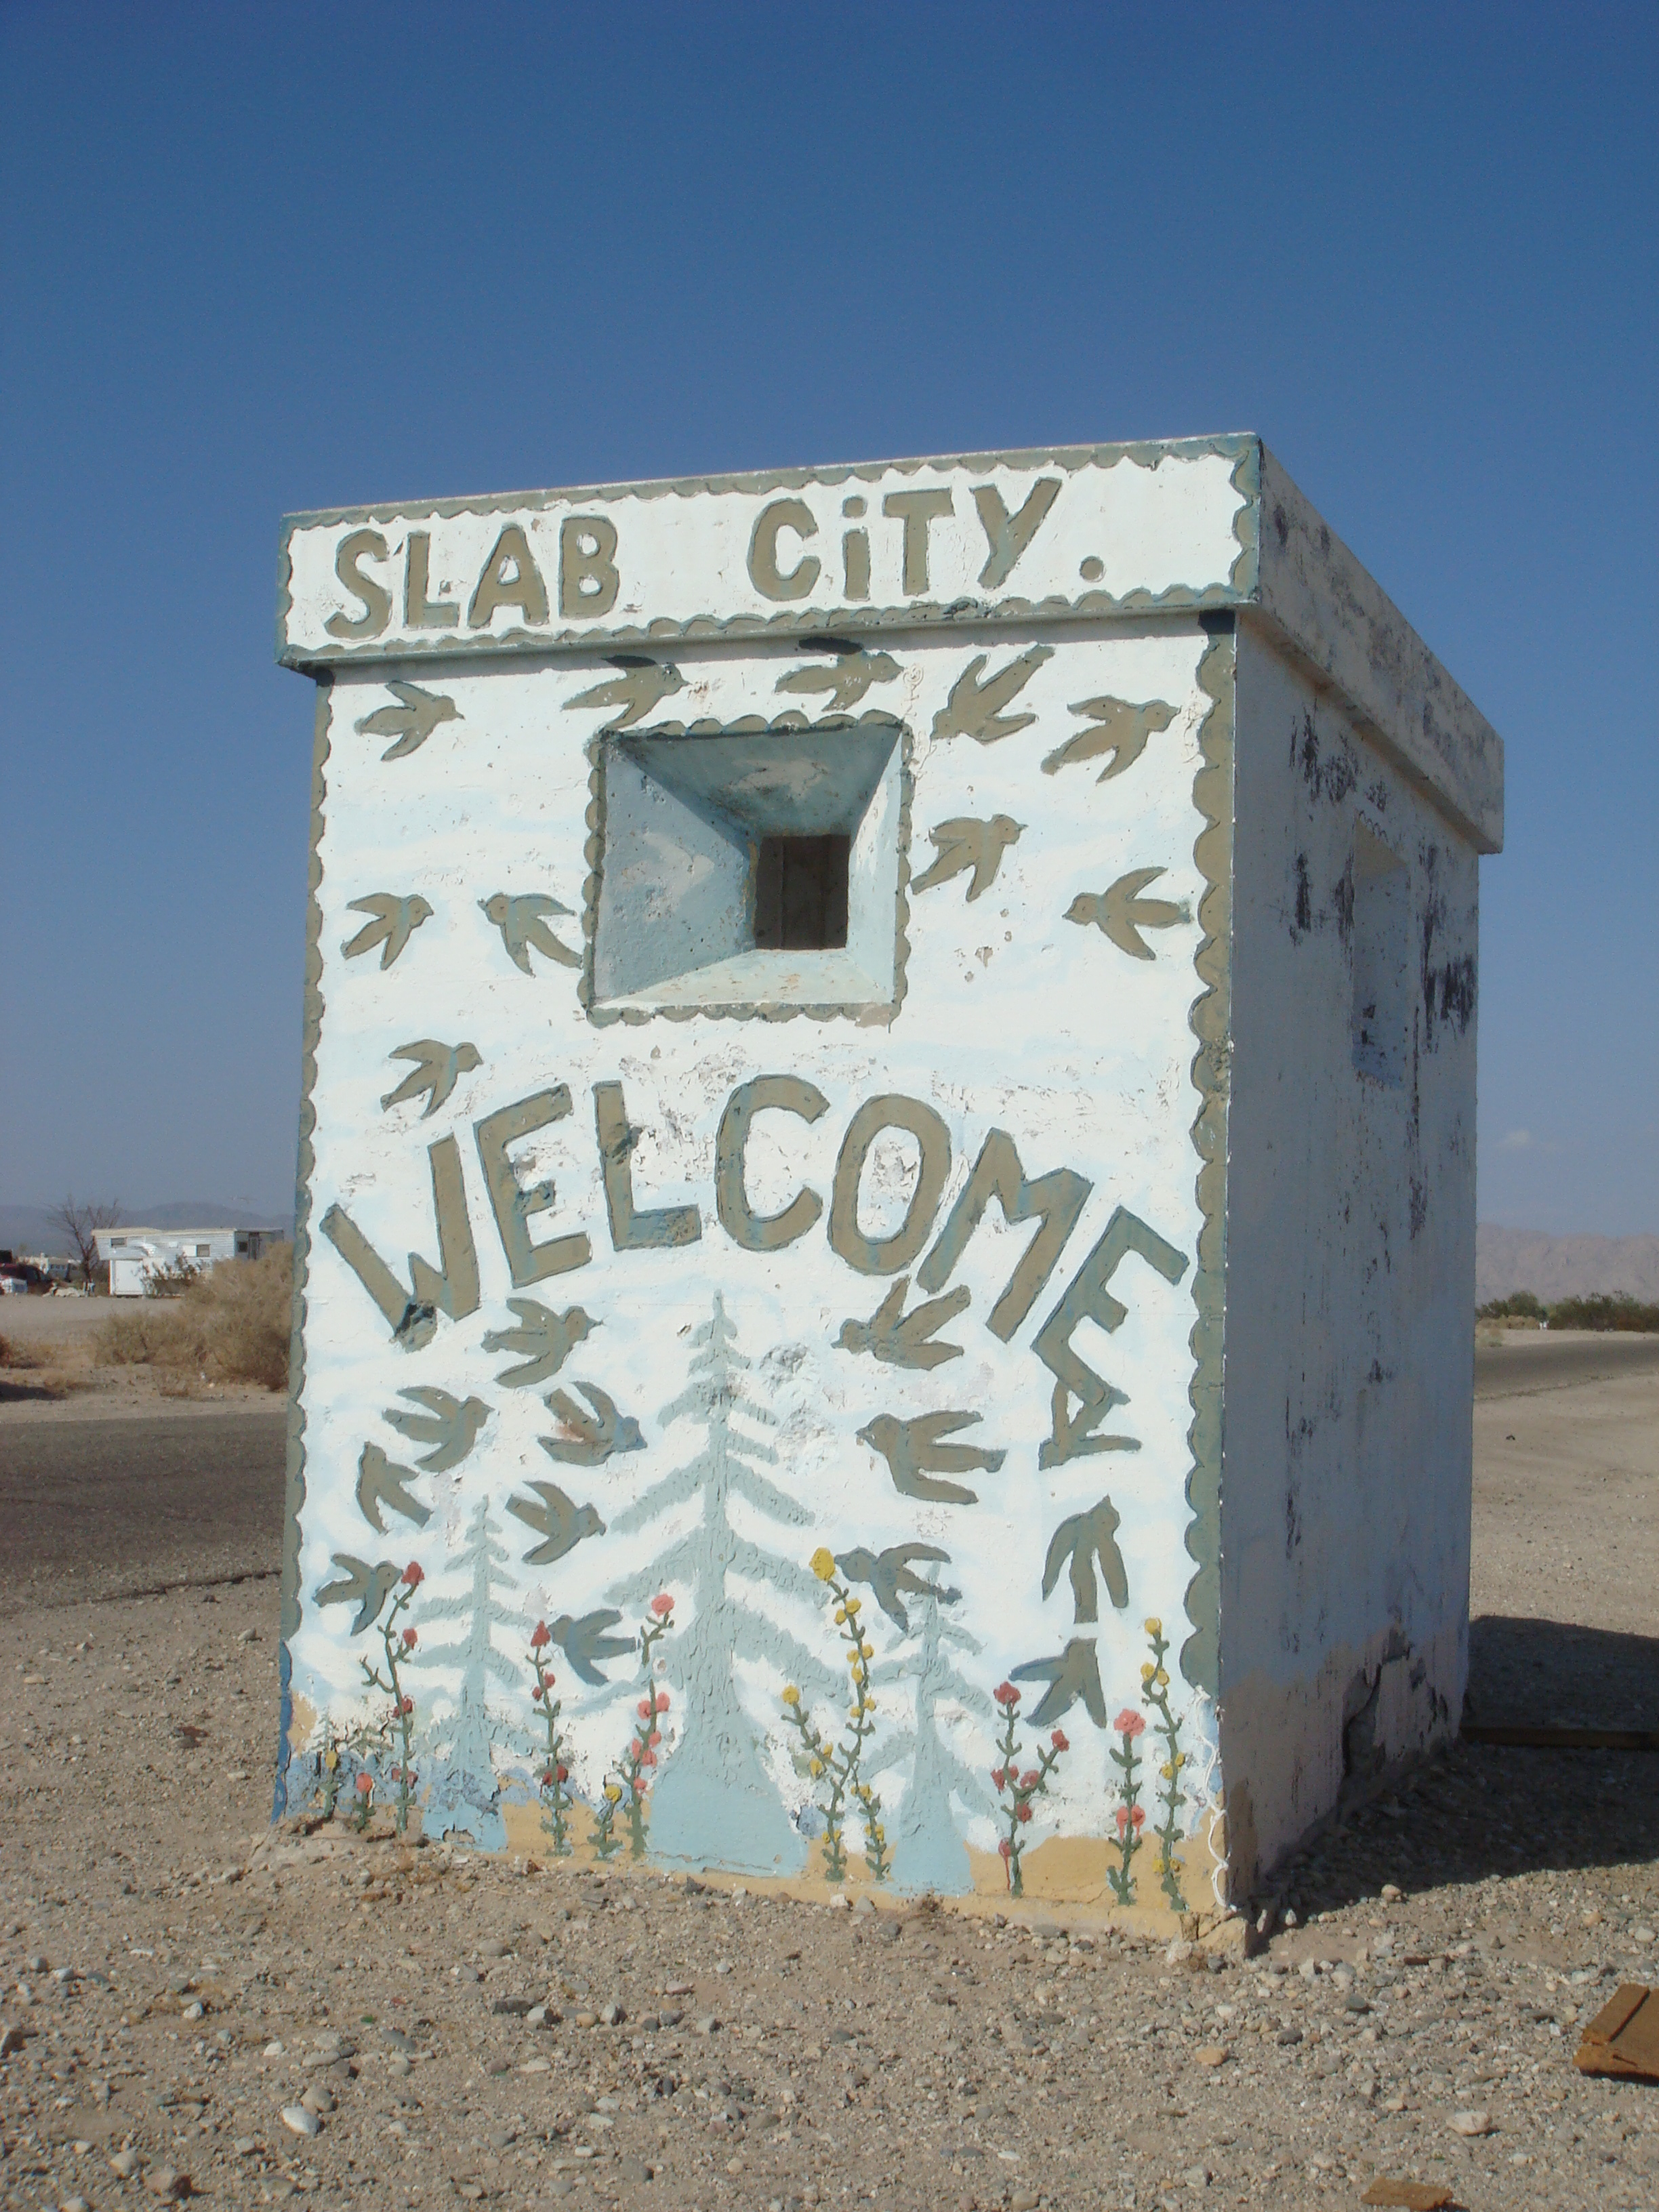 The Salton Sea Pictures And Scenes Of Slab City The